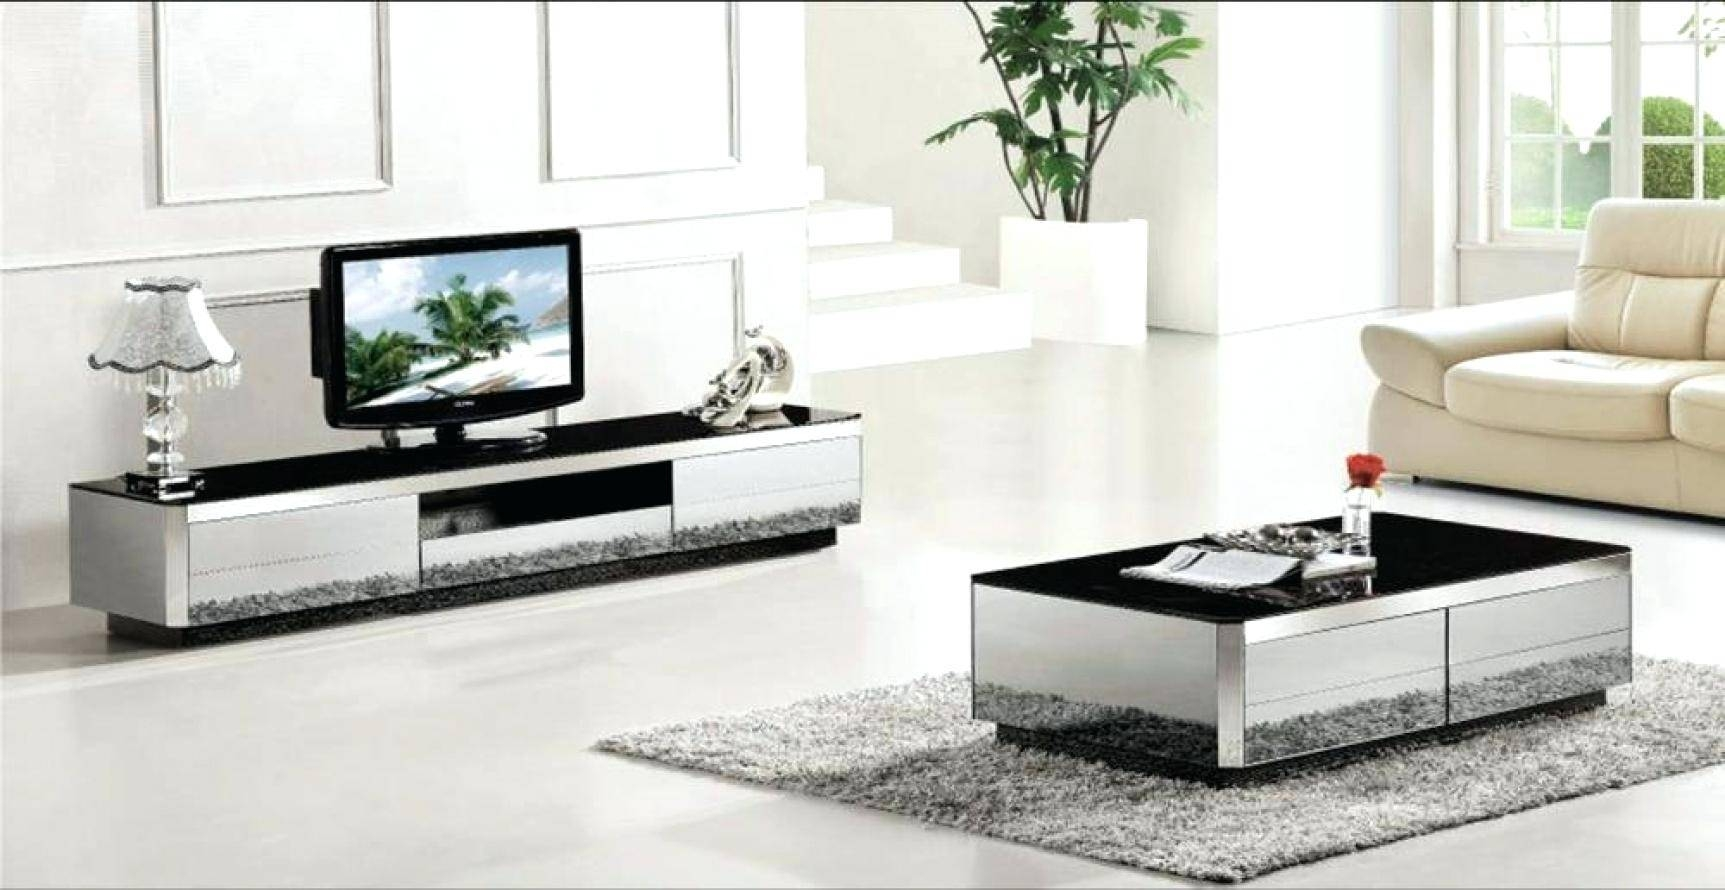 Coffee Table Sets With Matching Tv Stand | Coffee Tables Decoration throughout Tv Unit and Coffee Table Sets (Image 9 of 30)